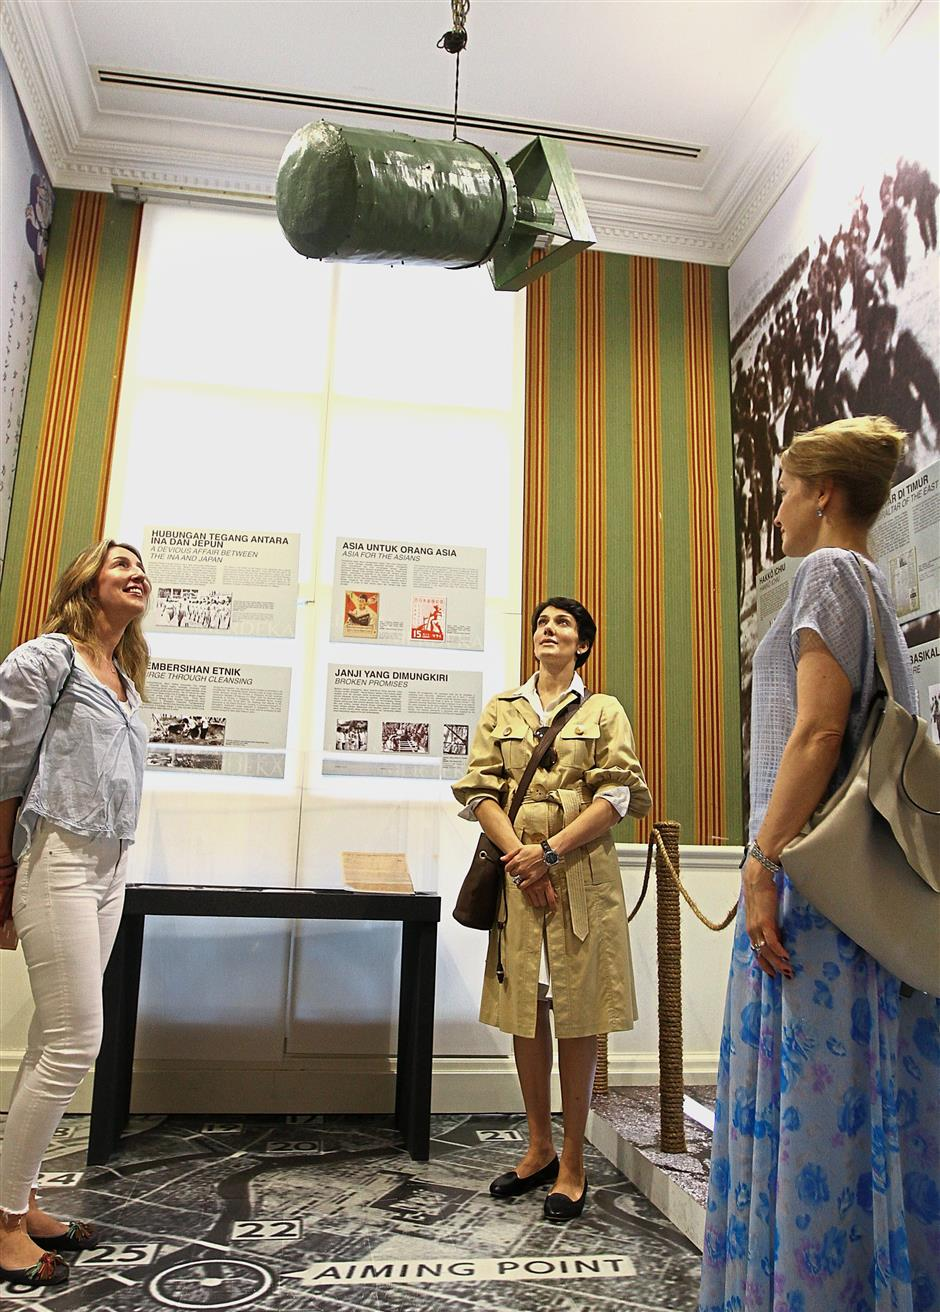 (From left) Masa Pipic Glavac, Tamara Hardikar and Marina Cherkasenko Winzap, from Croatia, Italy and Switzerland, respectively, looking at a replica of a World War II bomb on display at the exhibition.